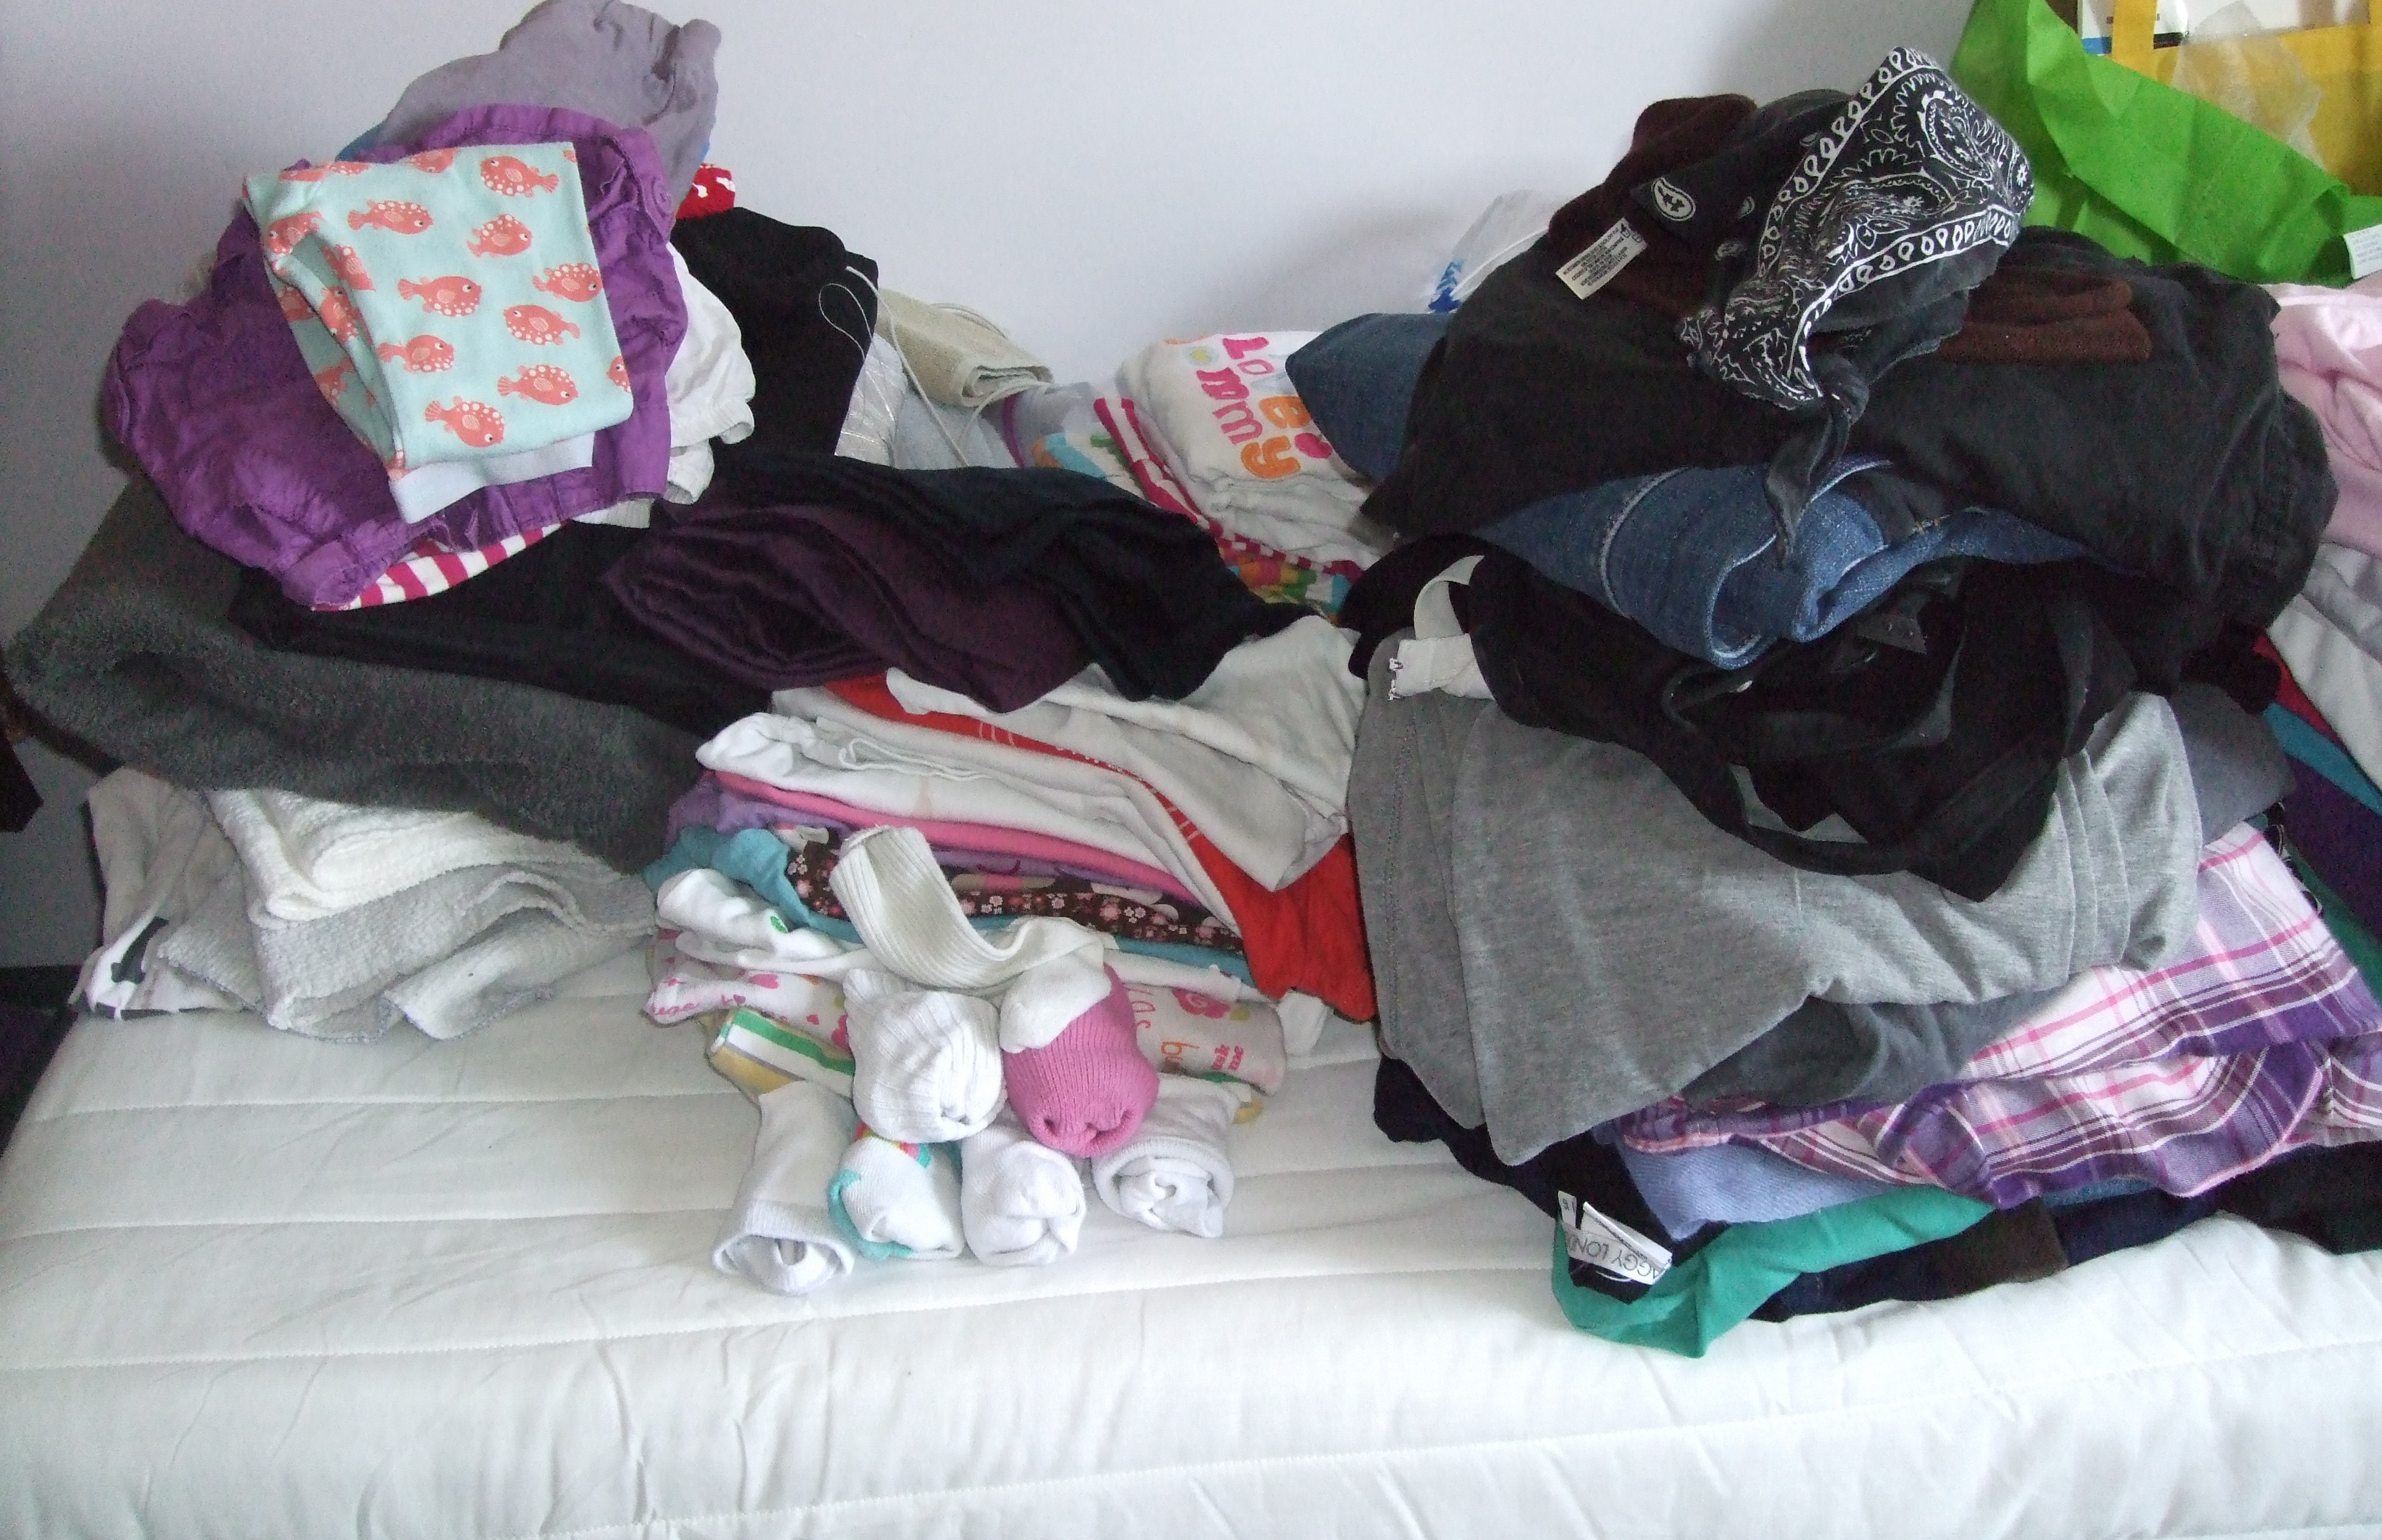 The Laundry Bed